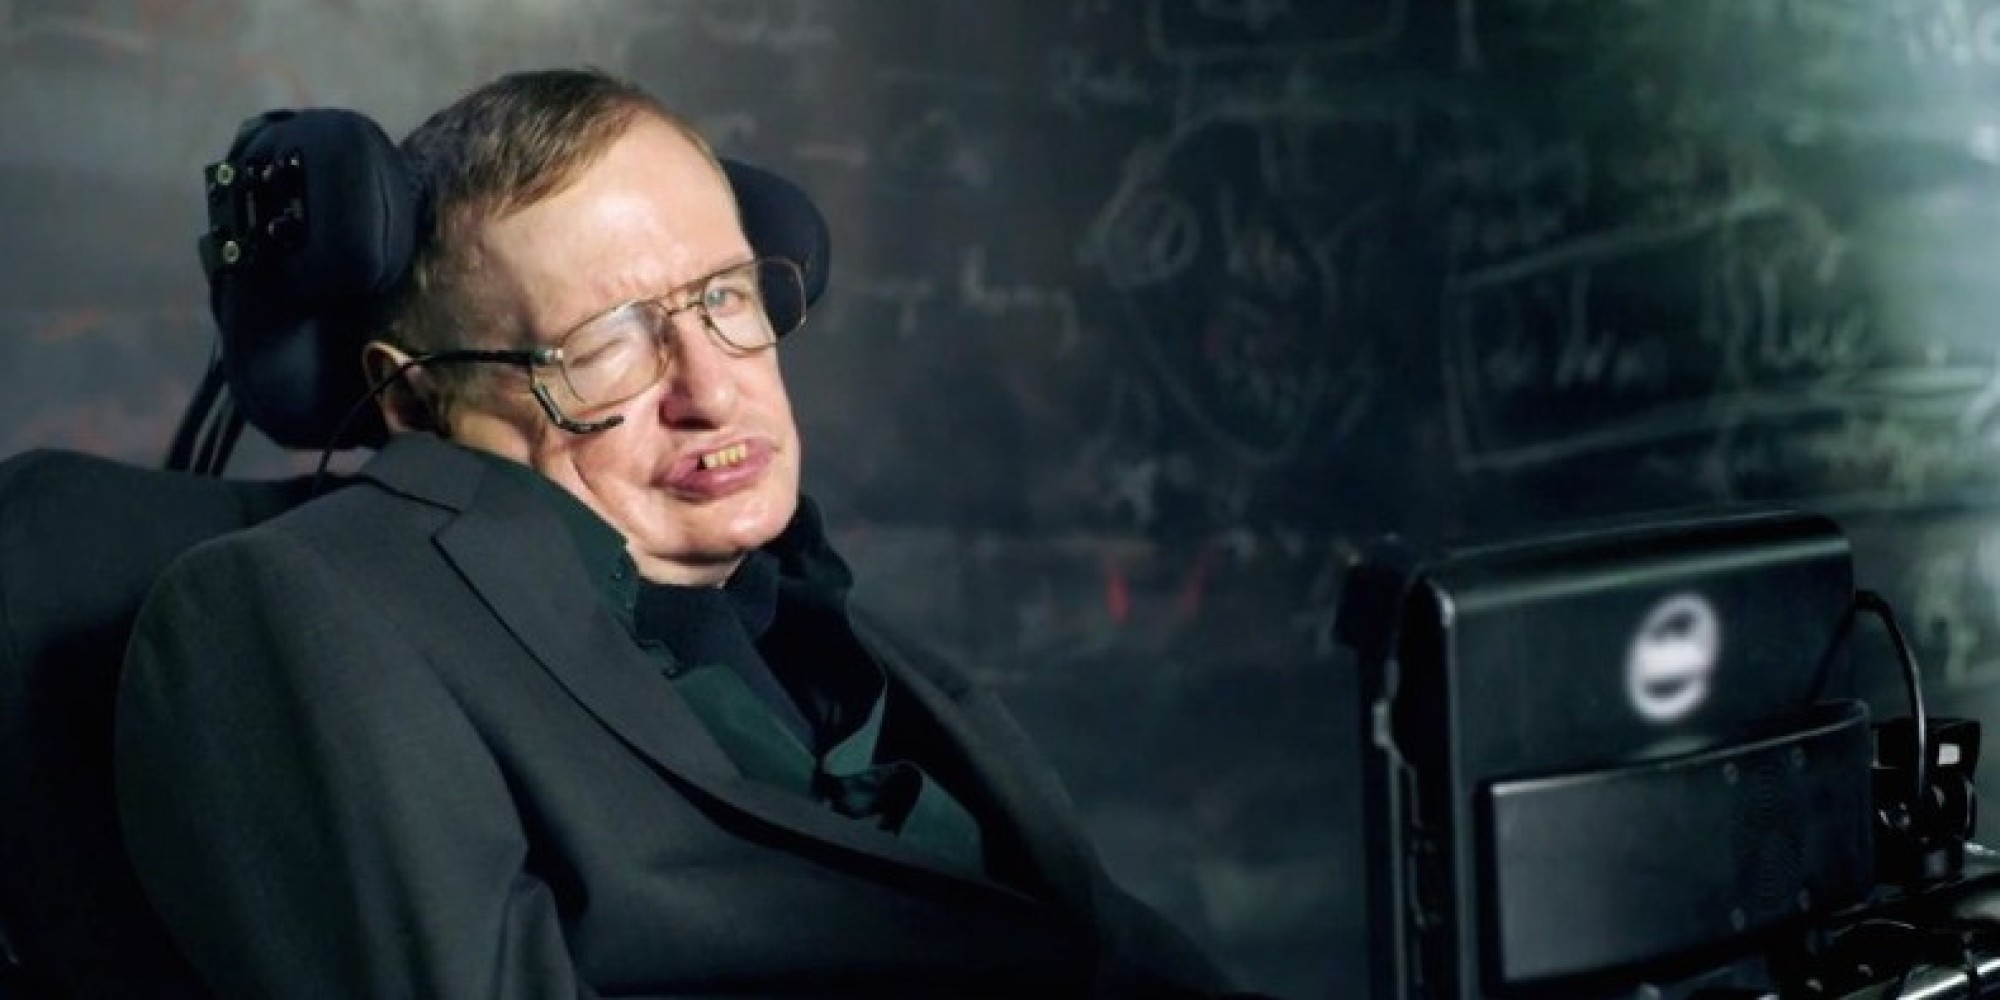 Stephen Hawking On Space Exploration: 'Boldly Go Where No ... Stephen Hawking